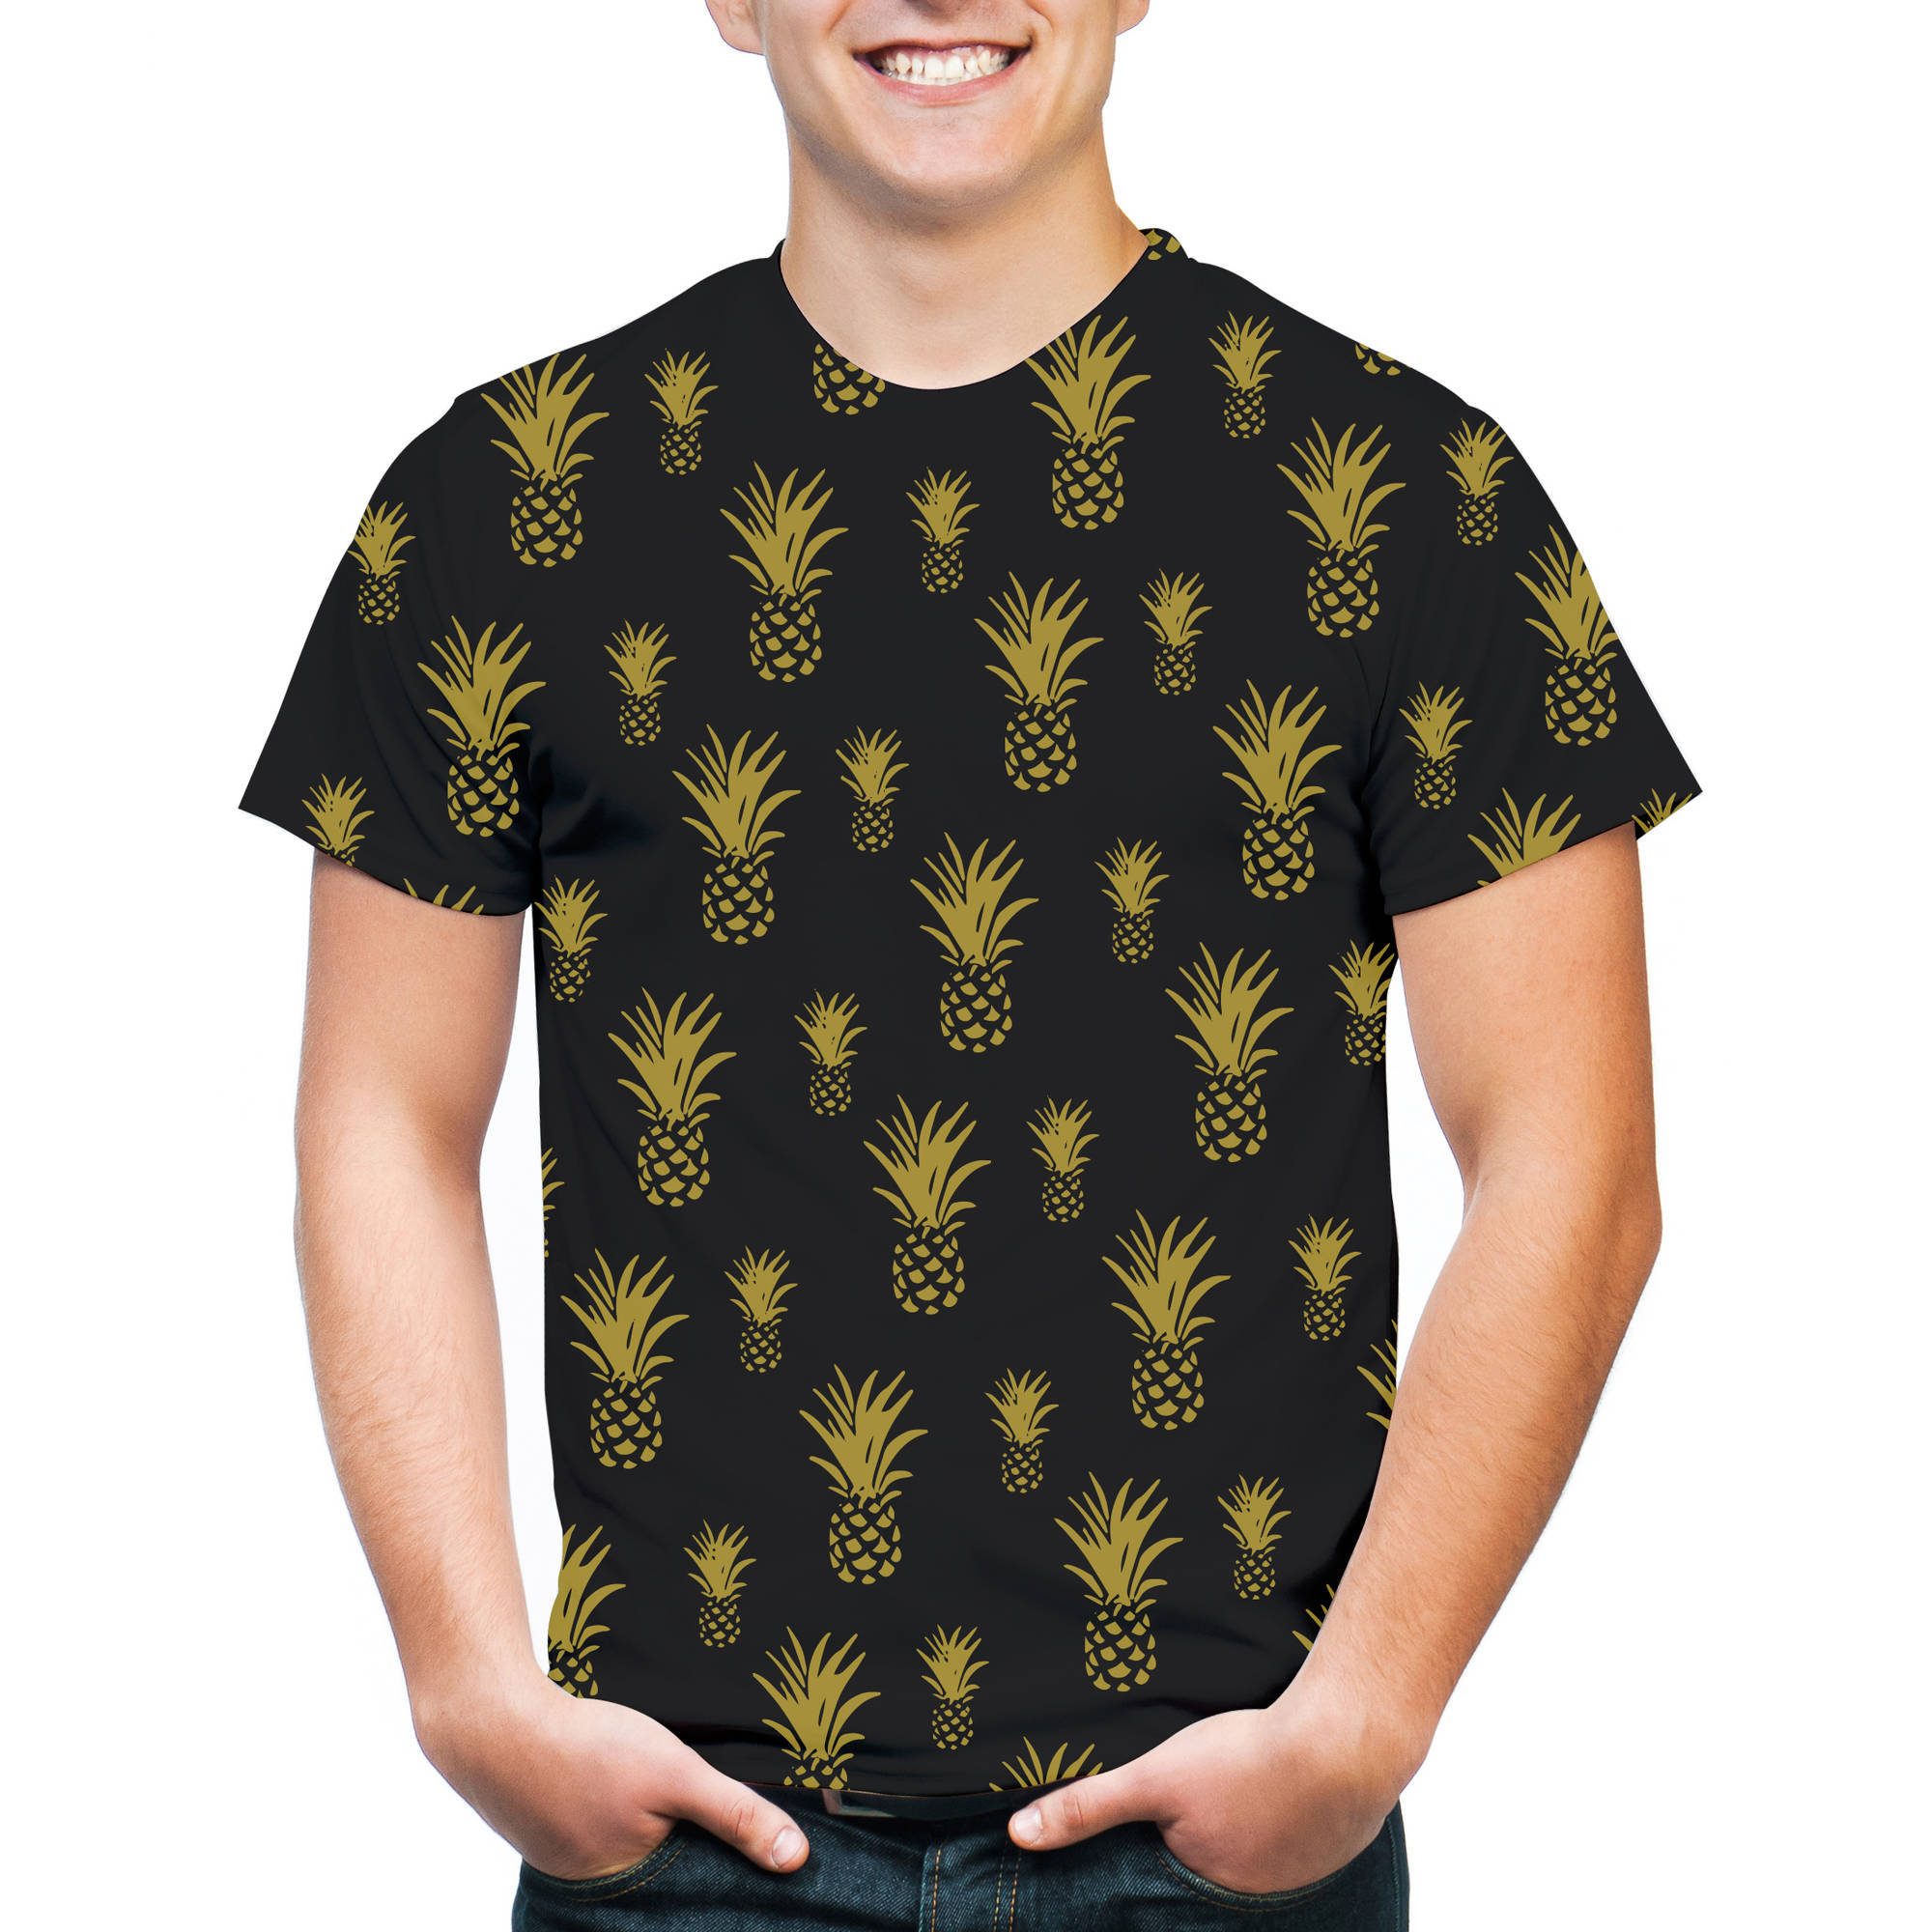 Pineapple Allover Print Men's Graphic Tee